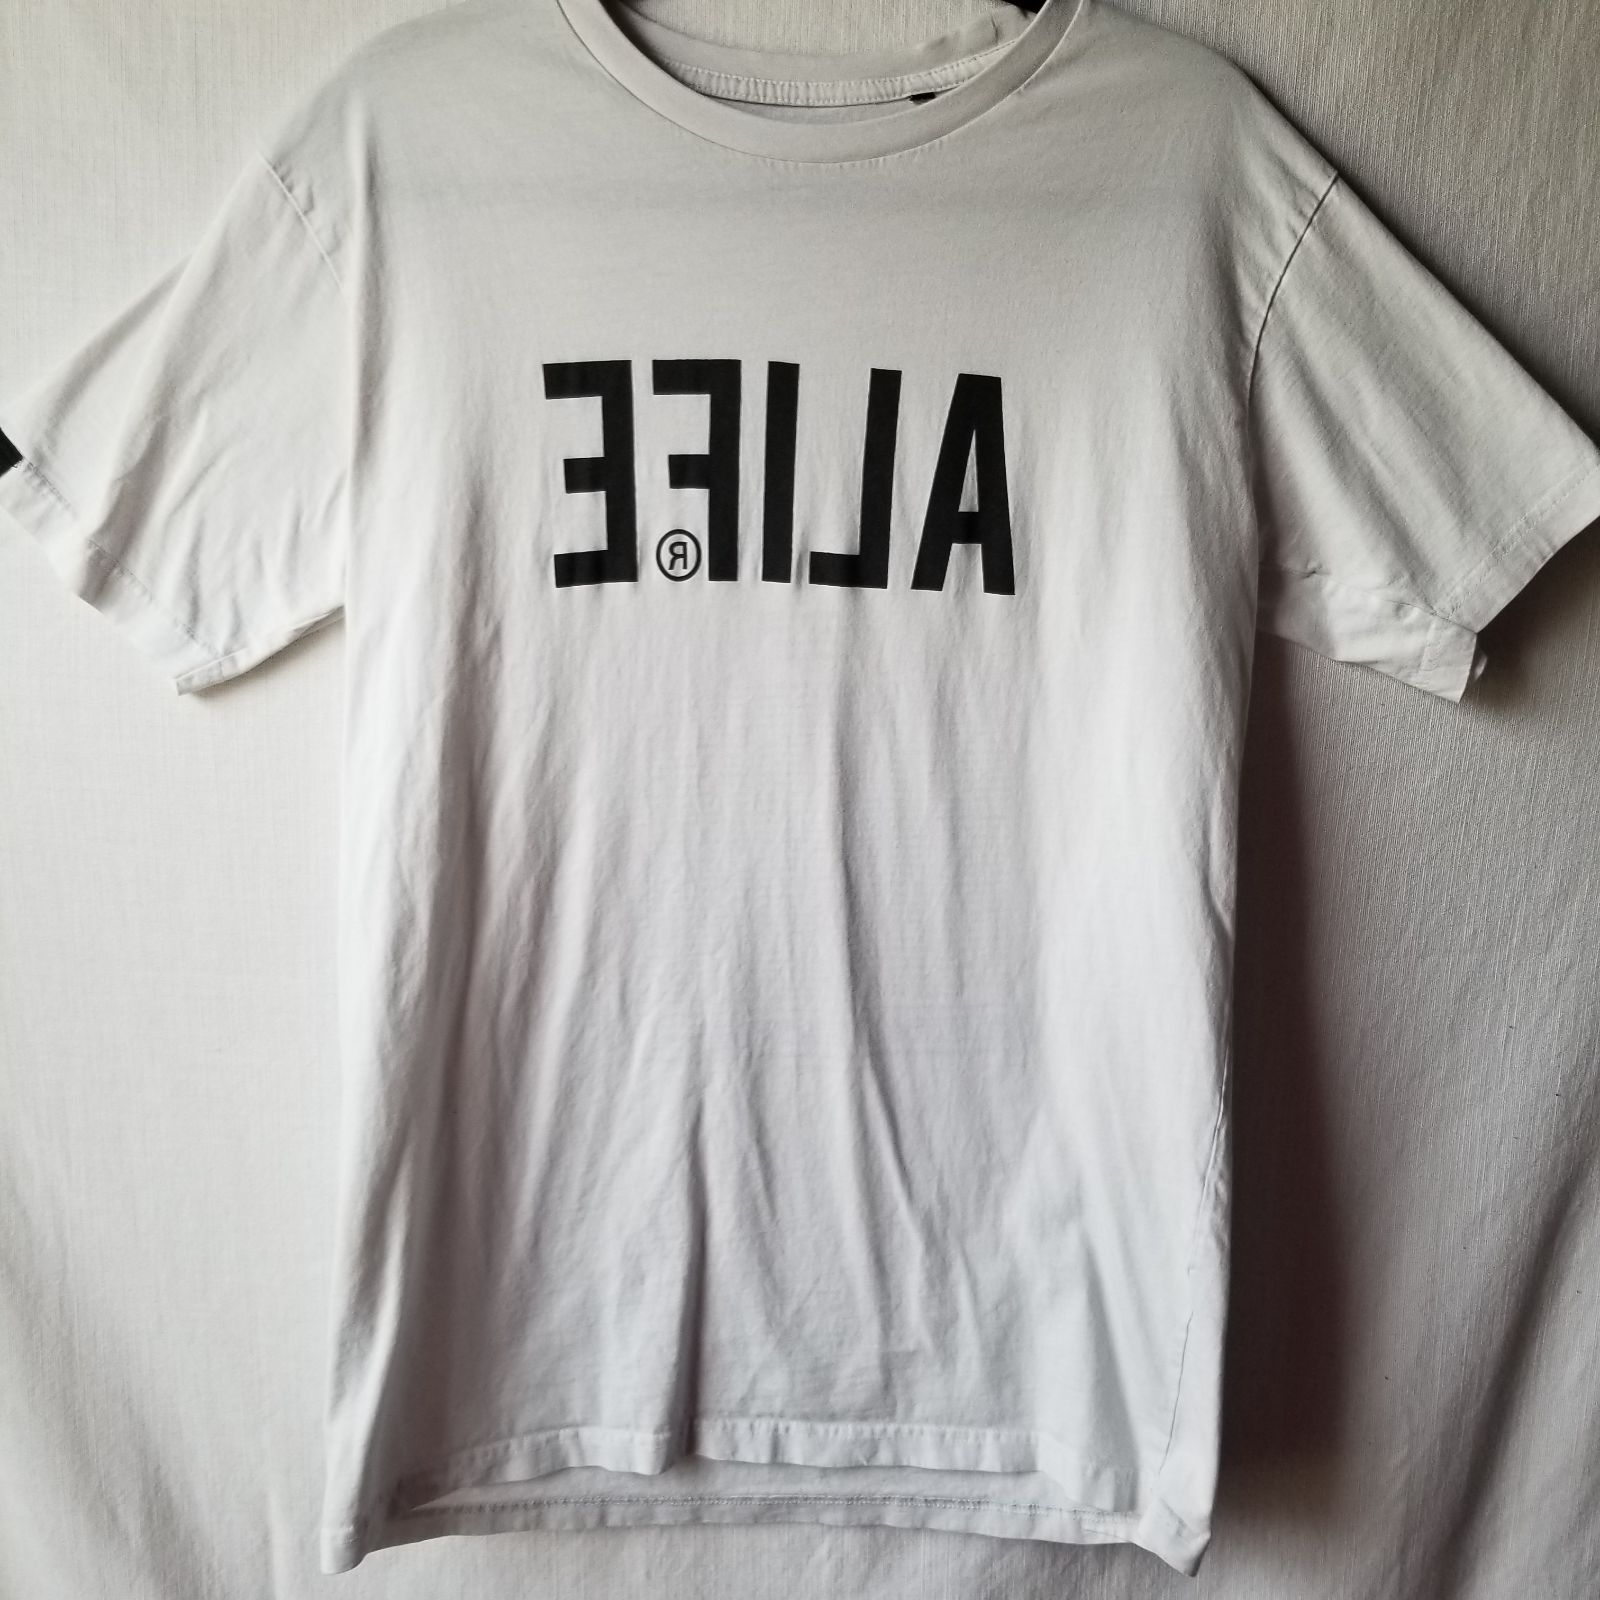 T-Post Alife Story Shirt Limited Edition